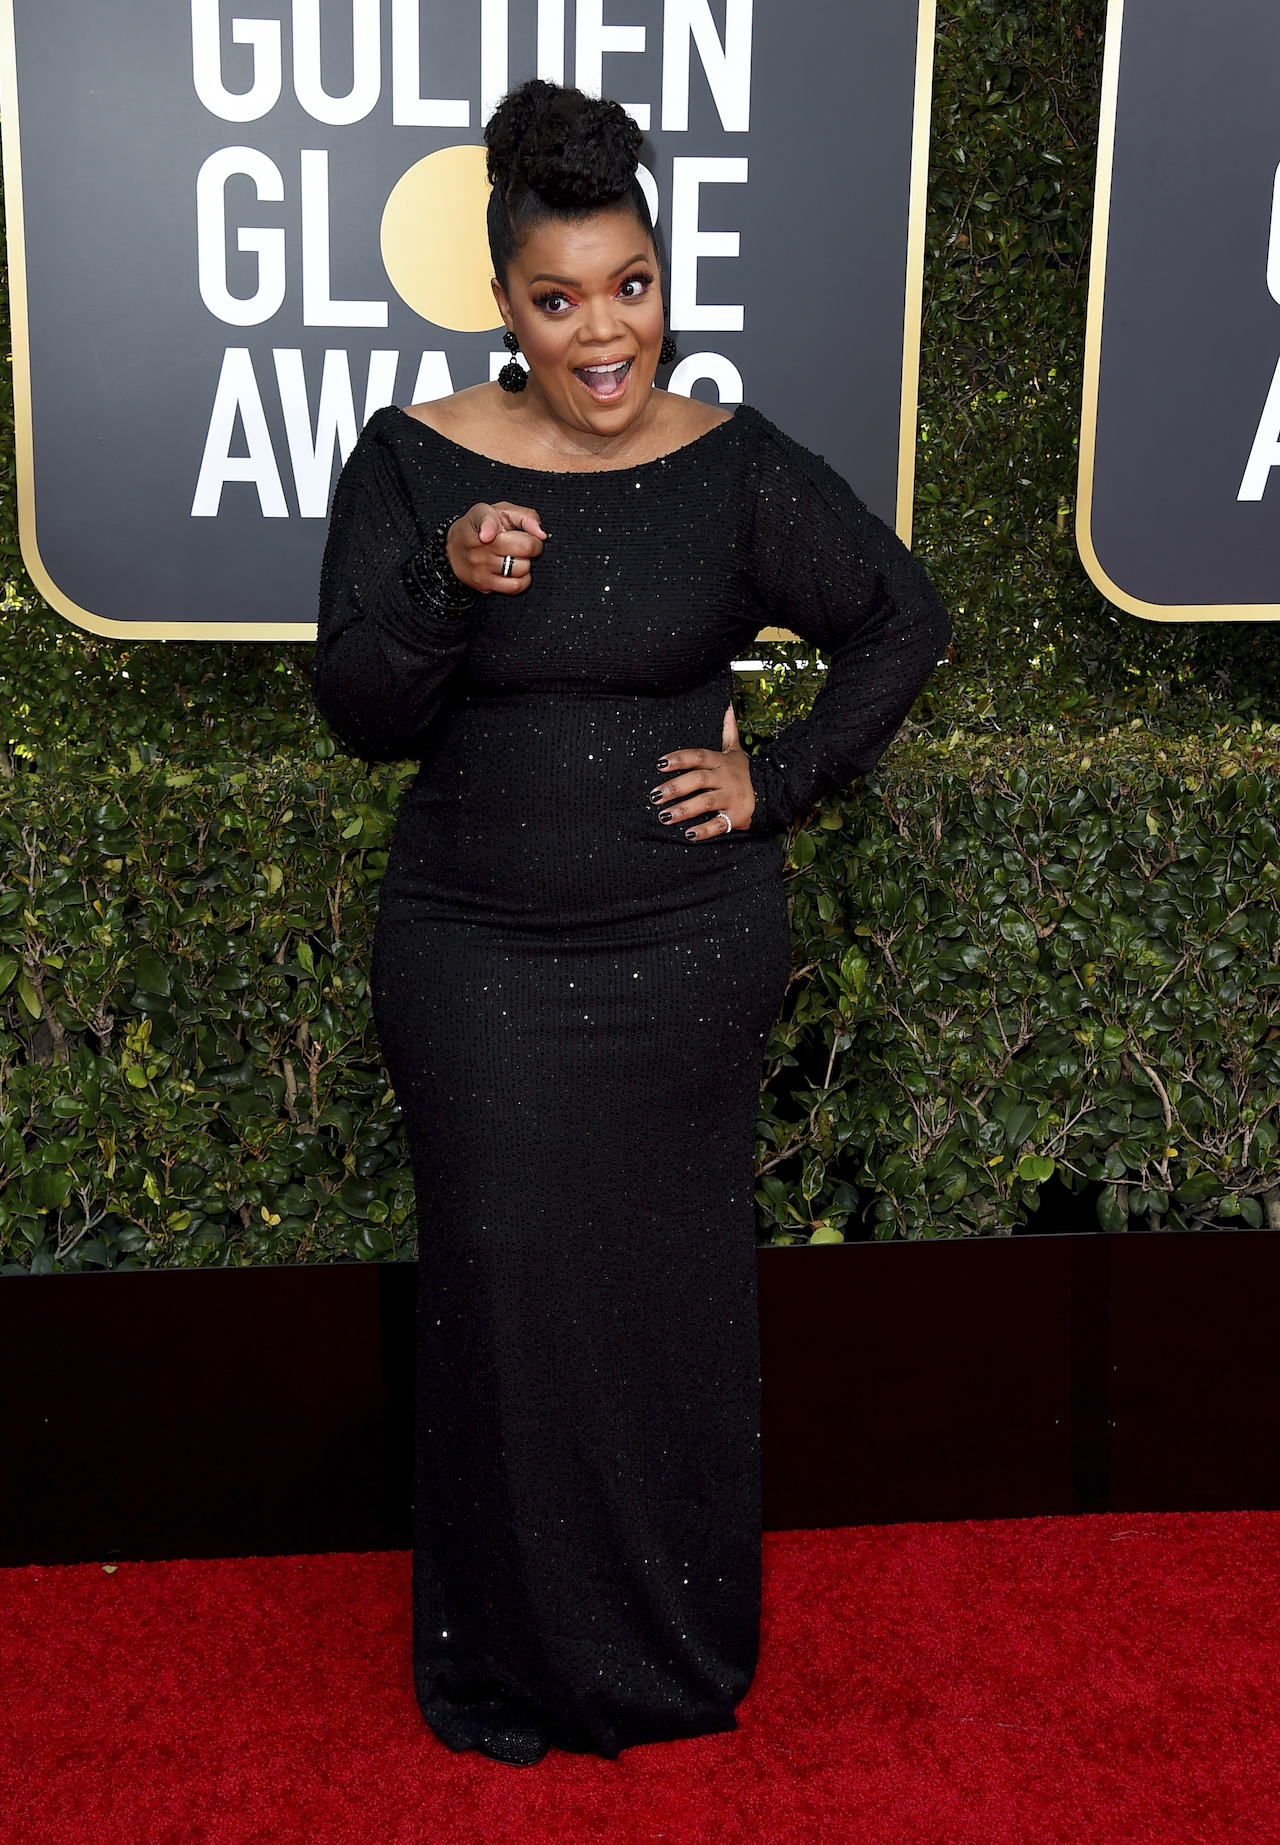 <div class='meta'><div class='origin-logo' data-origin='AP'></div><span class='caption-text' data-credit='Jordan Strauss/Invision/AP'>Yvette Nicole Brown arrives at the 76th annual Golden Globe Awards at the Beverly Hilton Hotel on Sunday, Jan. 6, 2019, in Beverly Hills, Calif.</span></div>